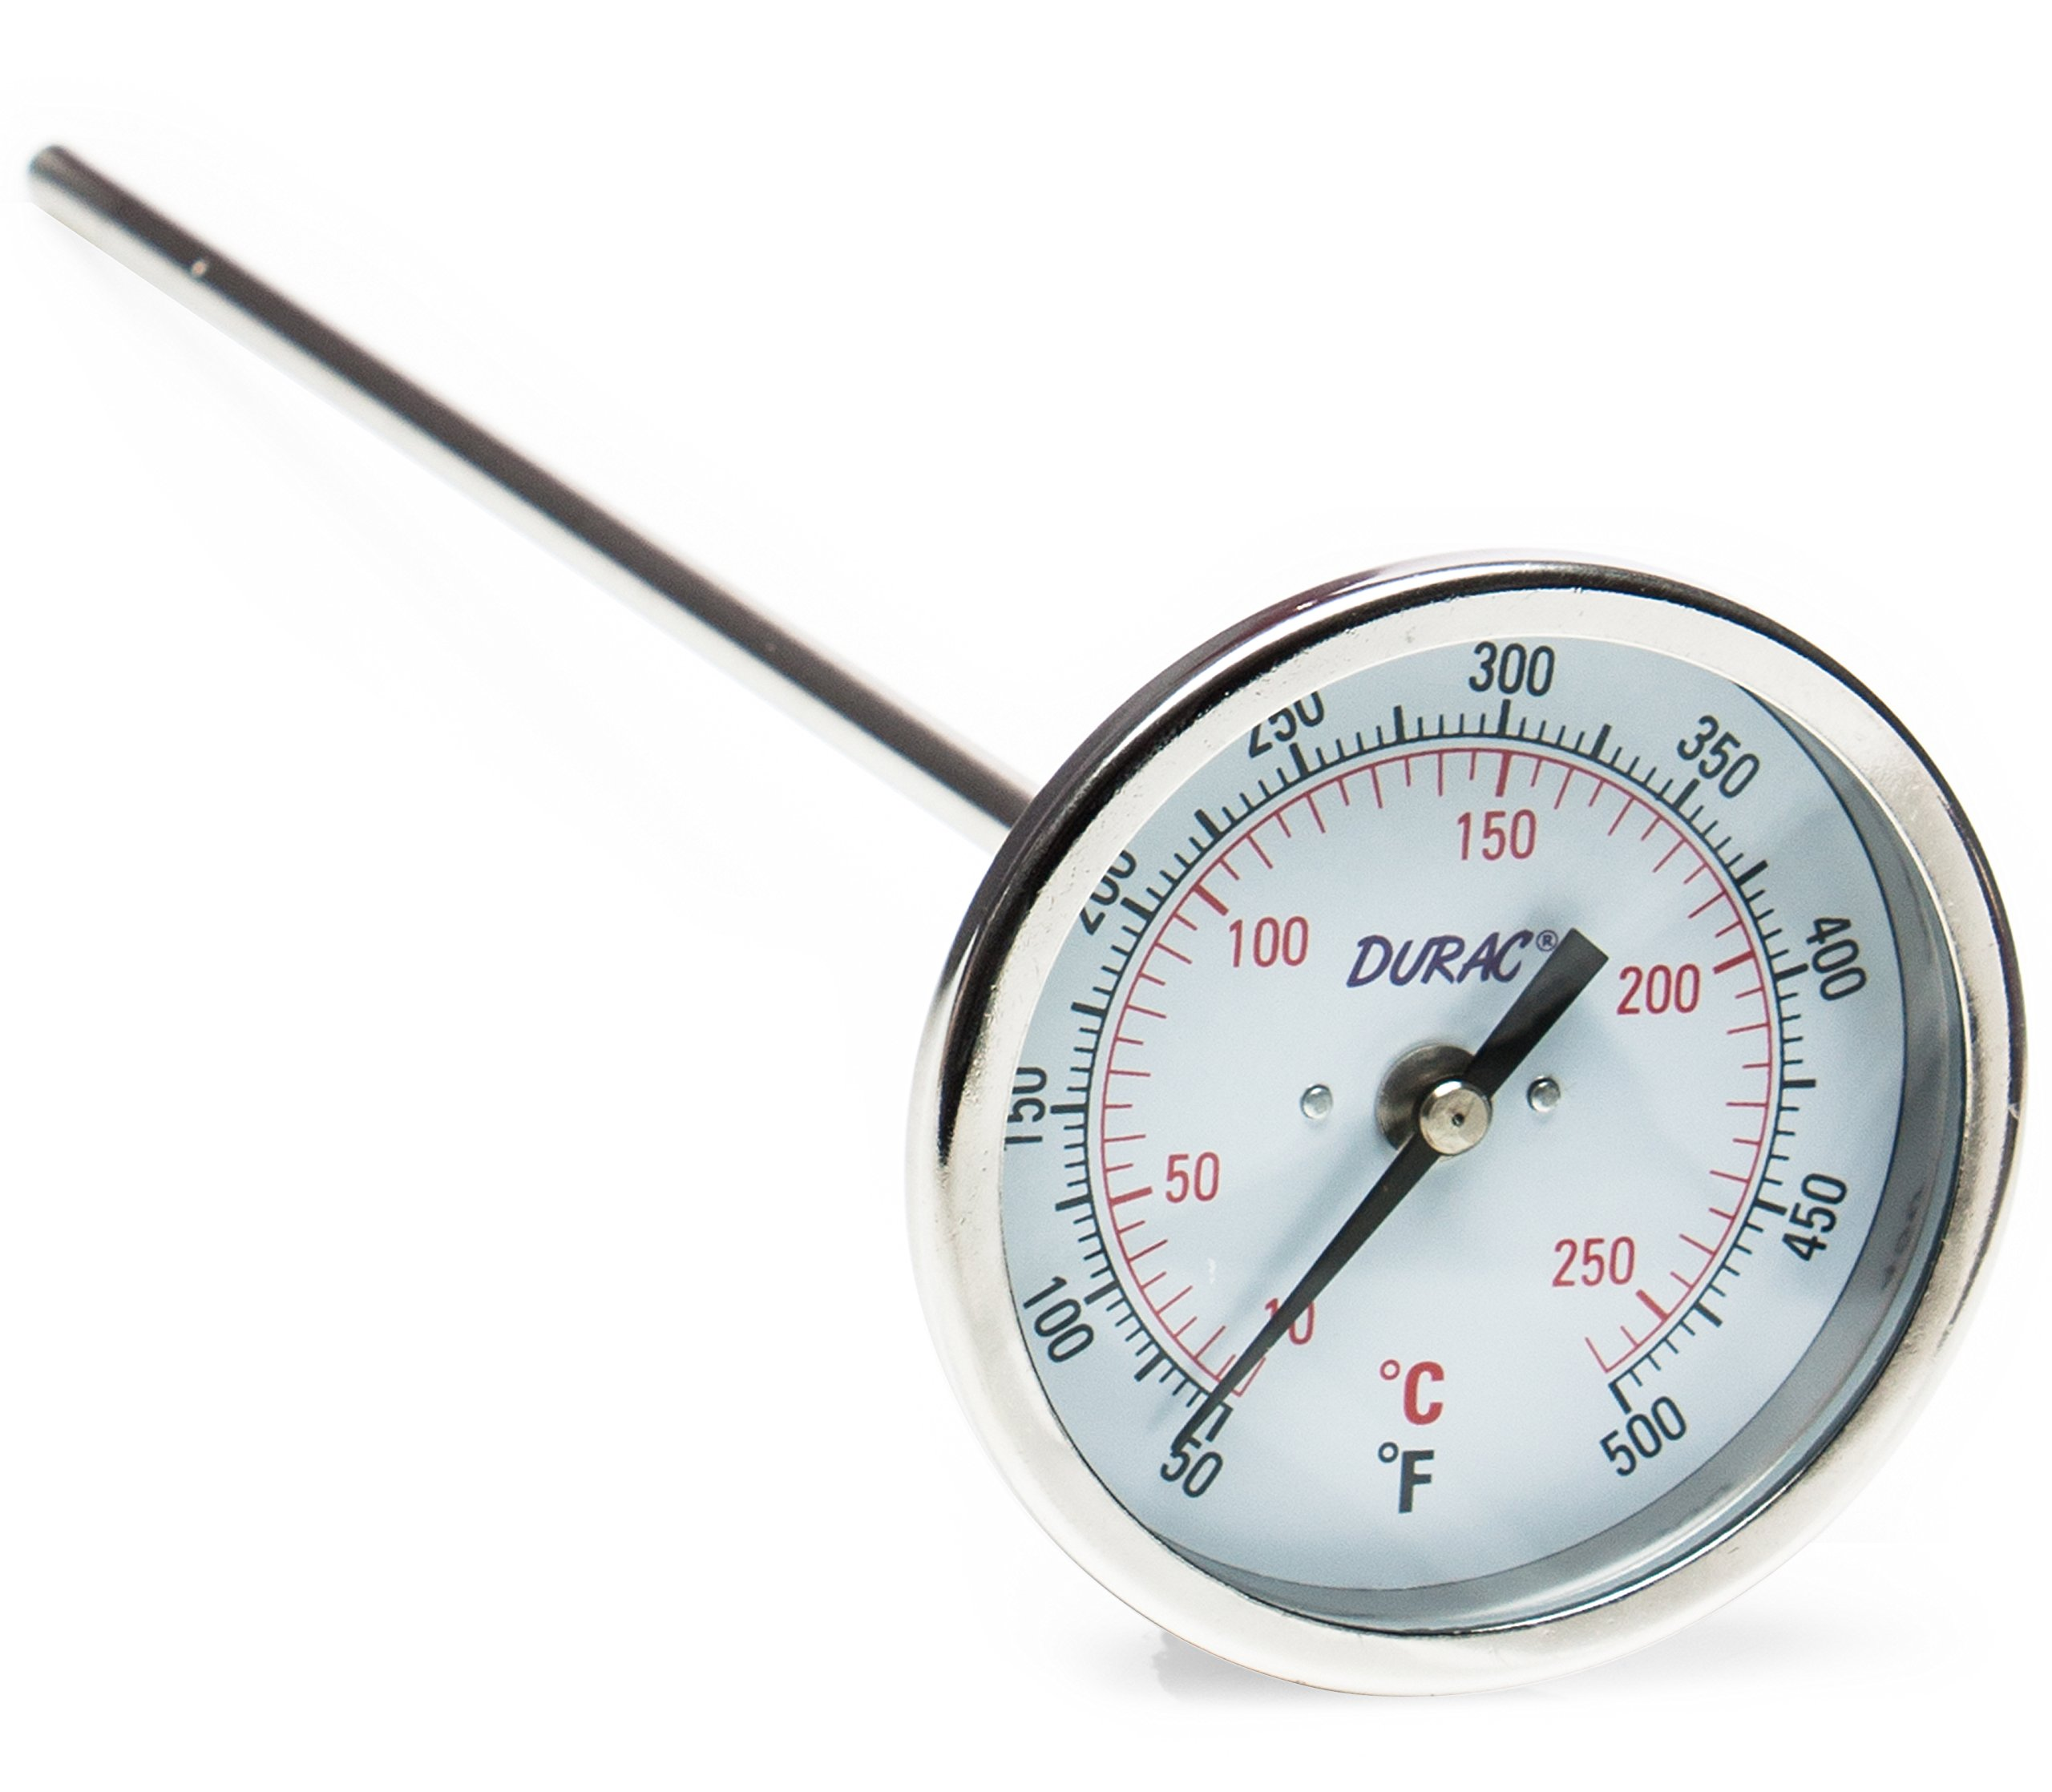 H-B DURAC Bi-Metallic Dial Thermometer; 10 to 260C (50 to 500F), 1/2 in. NPT Threaded Connection, 75mm Dial (B61310-9200)